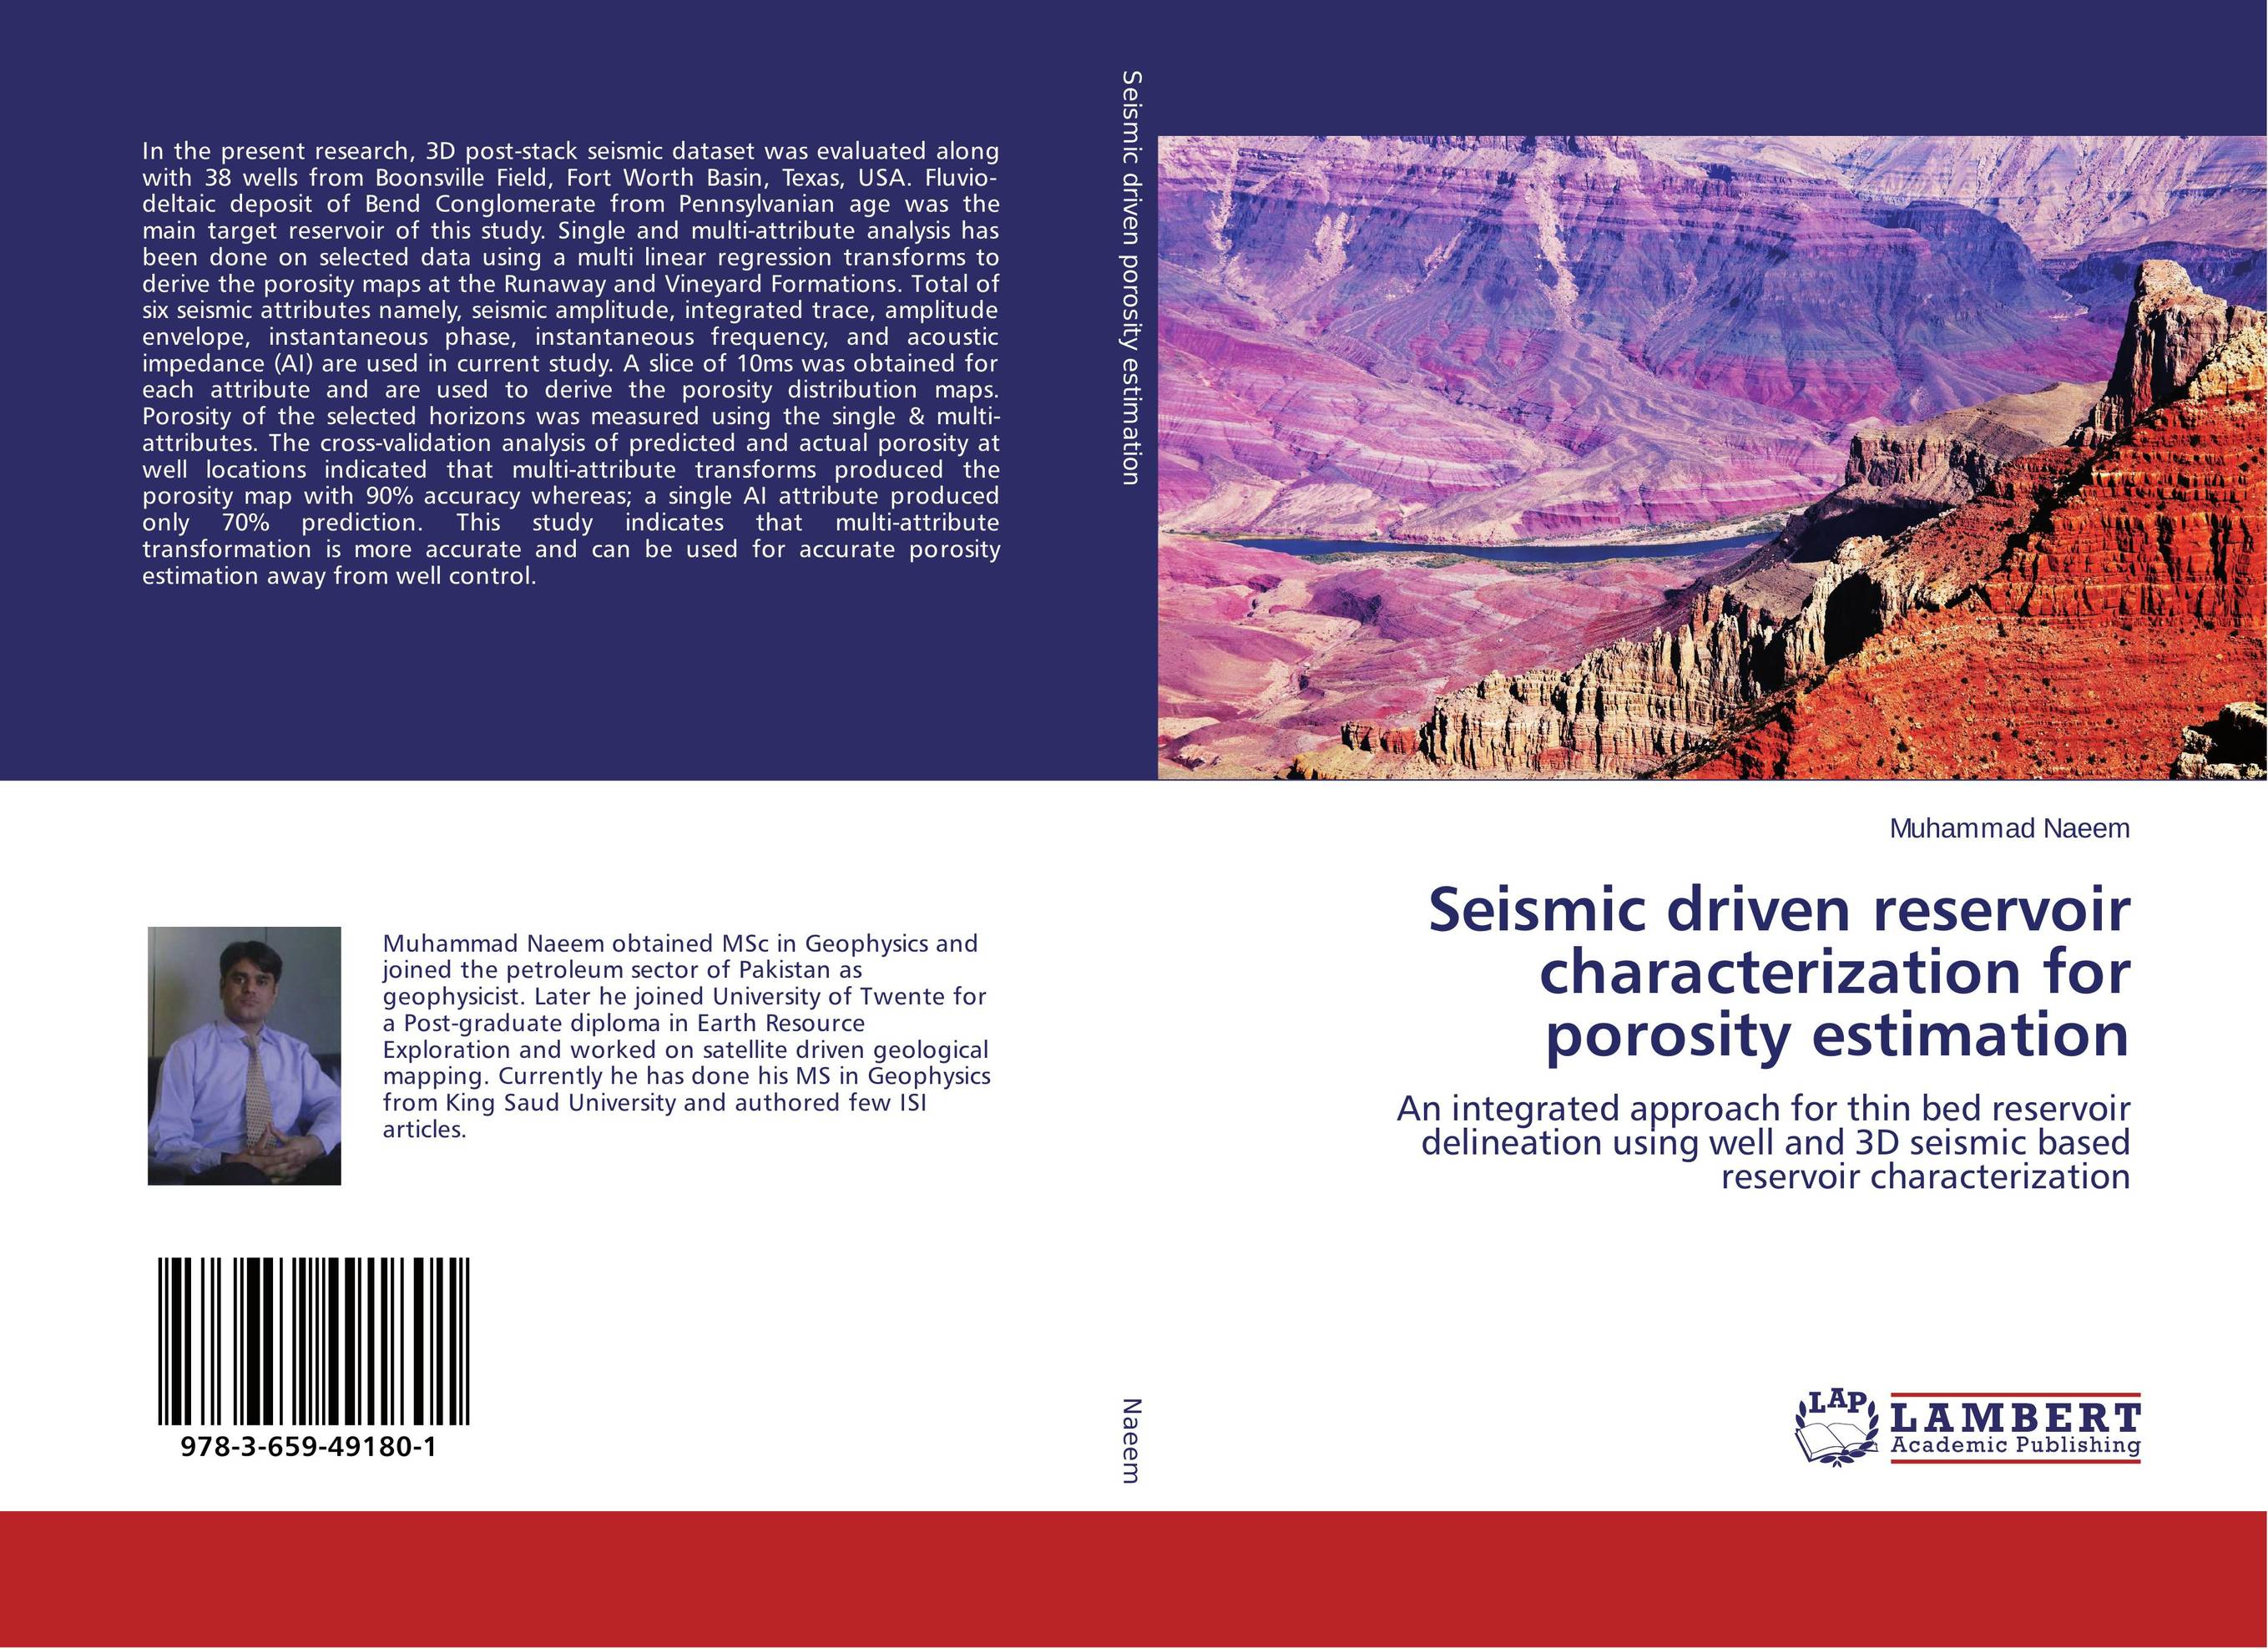 Seismic driven reservoir characterization for porosity estimation driven to distraction